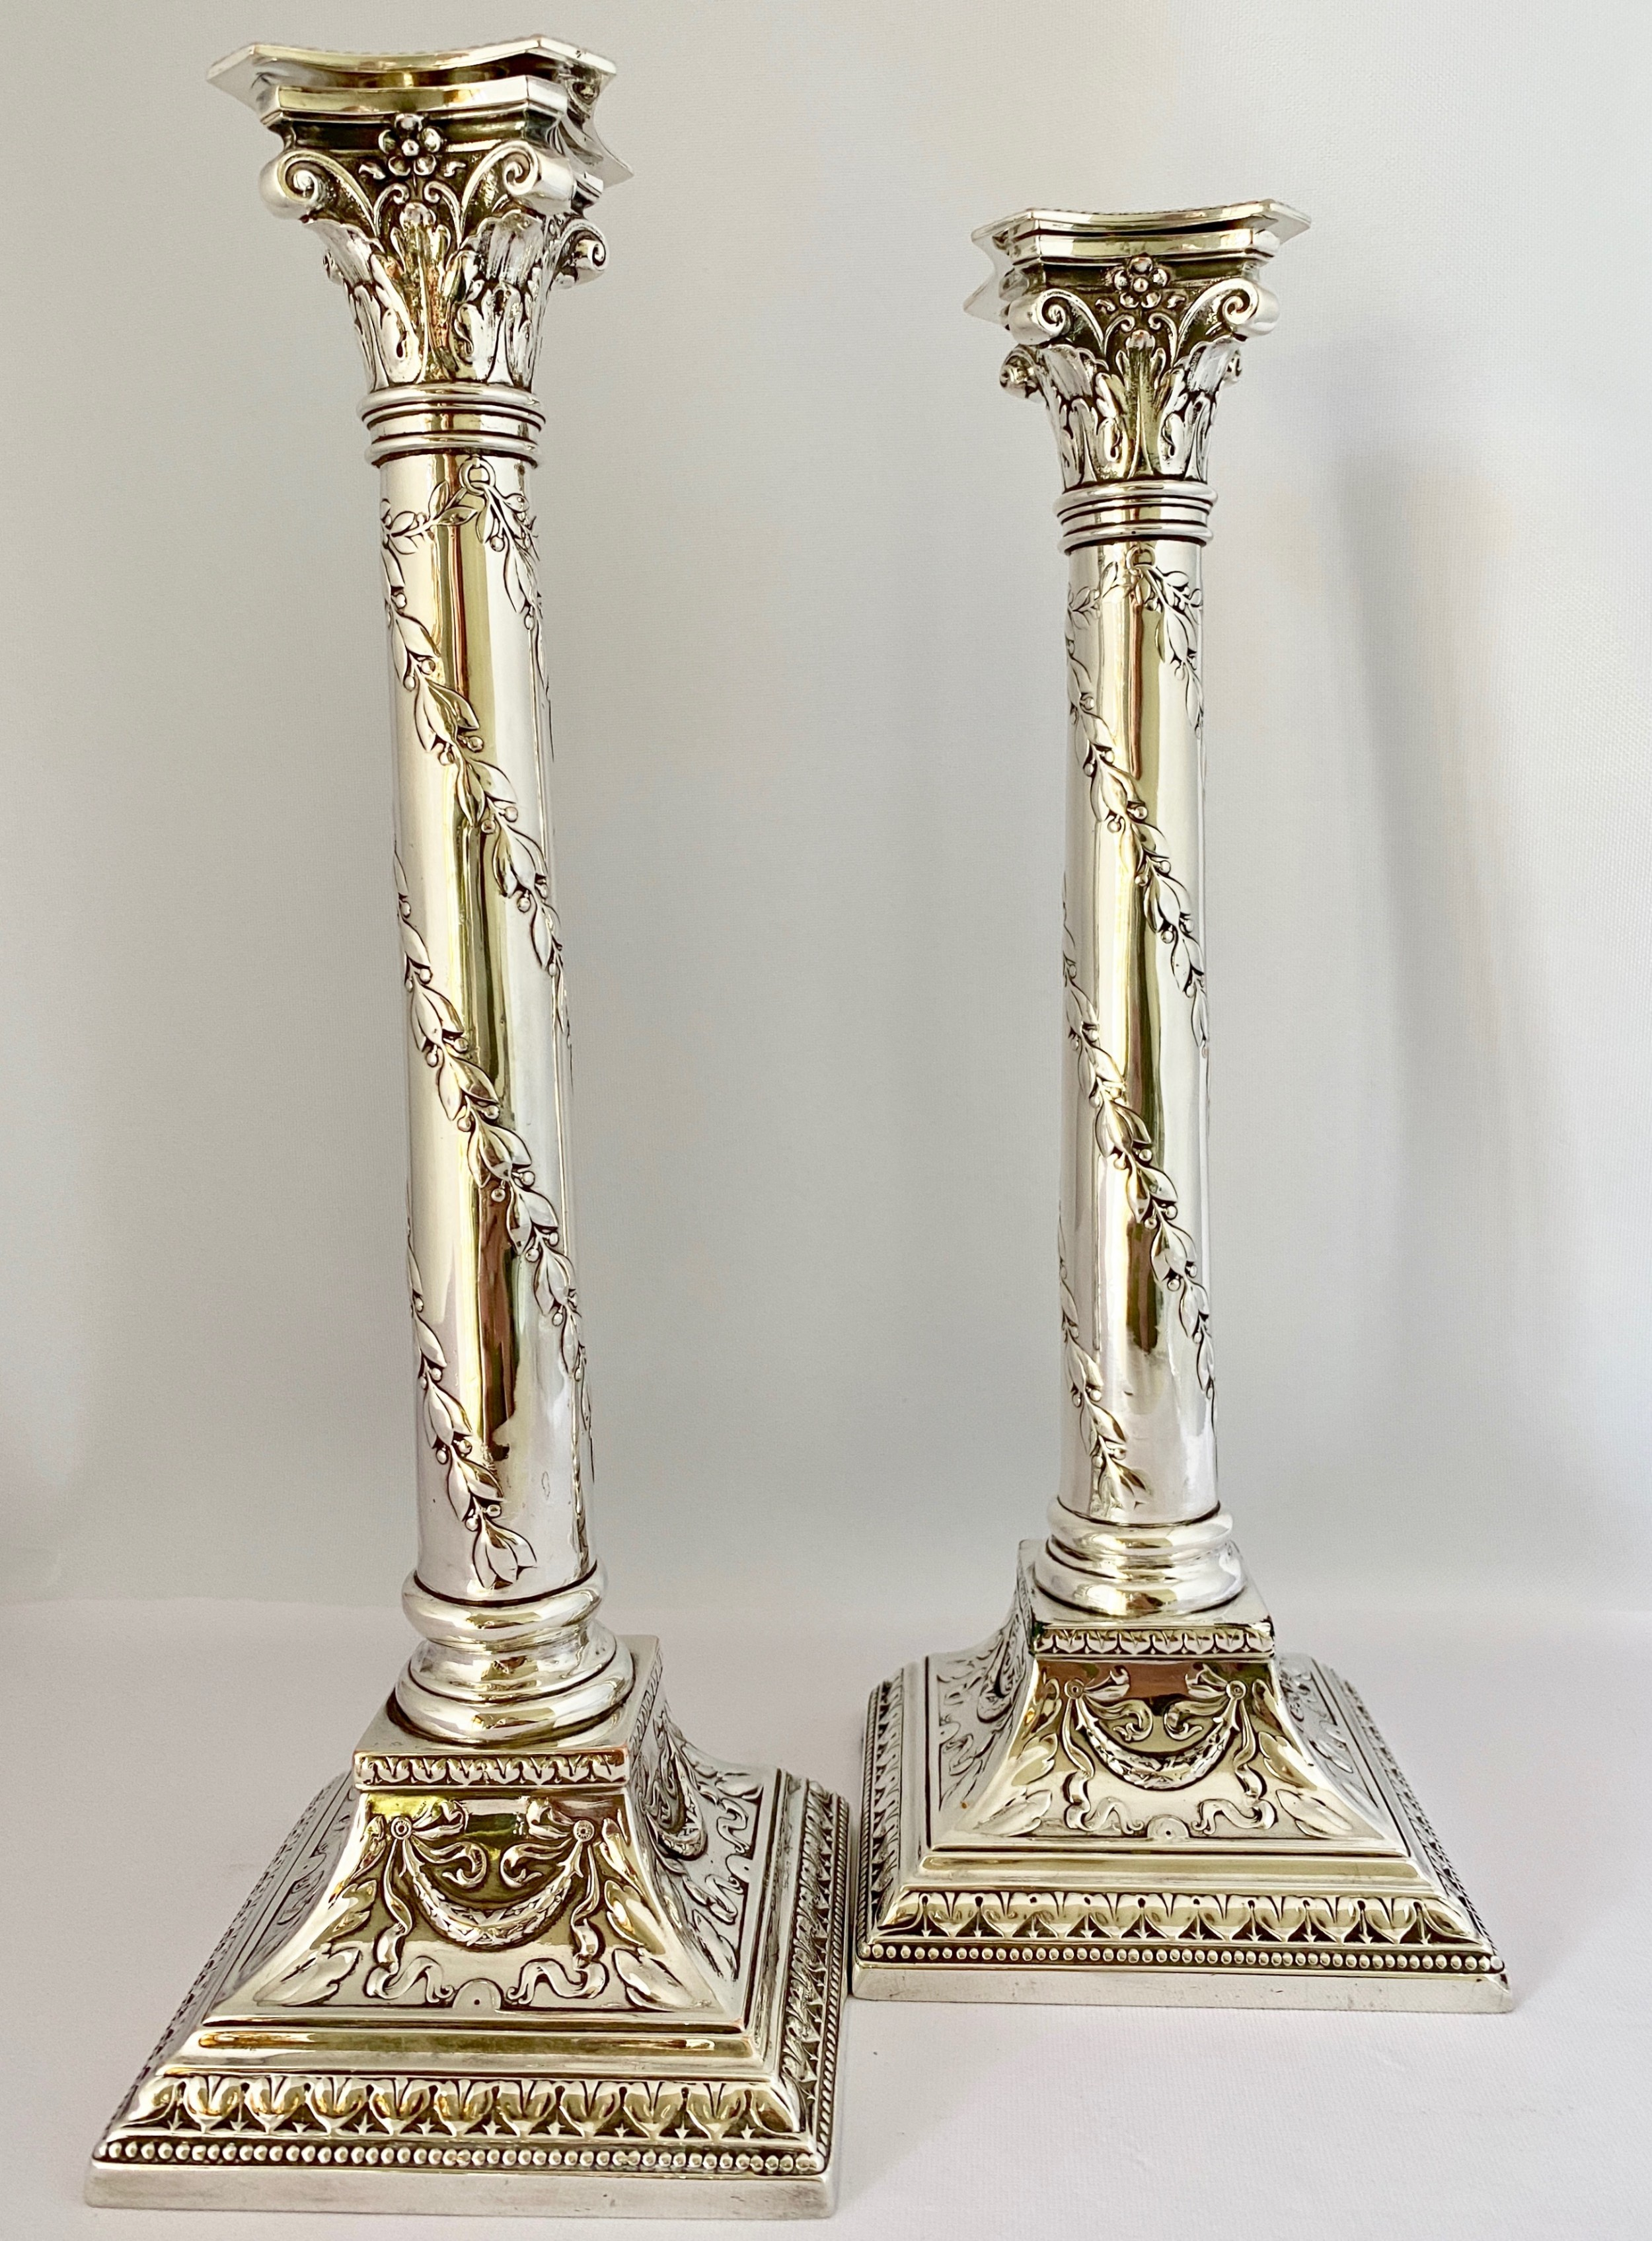 handsome pair of silver plated candlesticks c1900